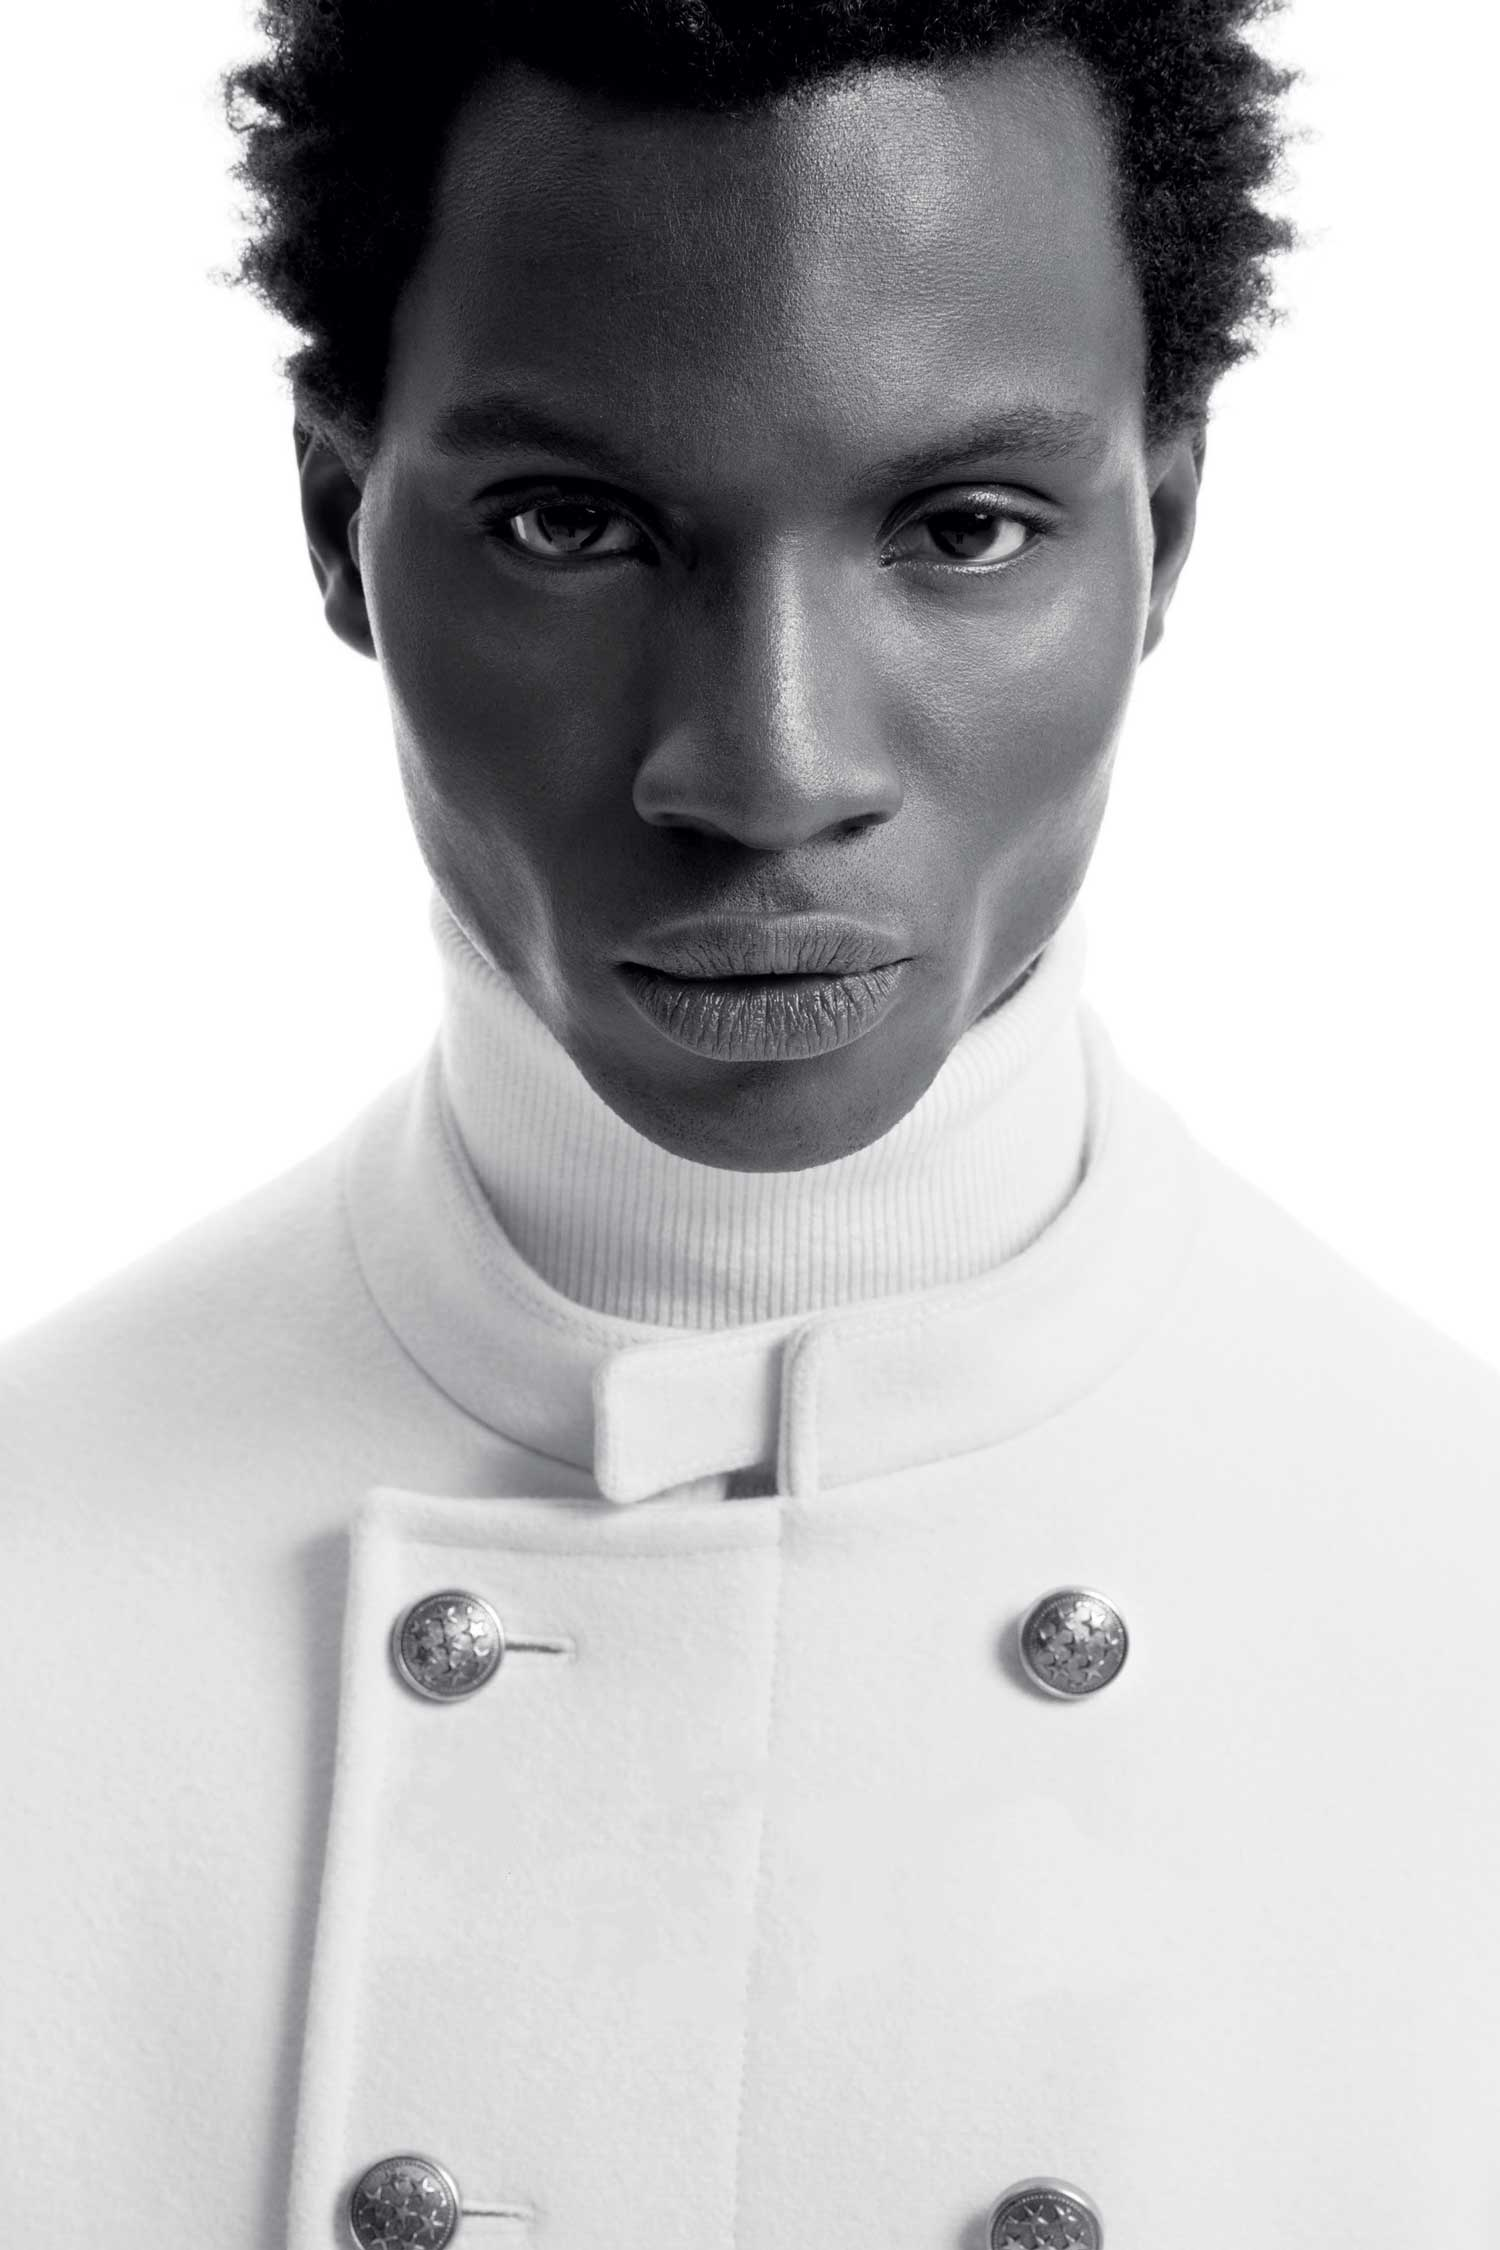 Adonis Bosso (Ivory Coast Model) - Top Black Male Model Story for Sagaboi and Sagaboi.com. Image by Ports 1961.